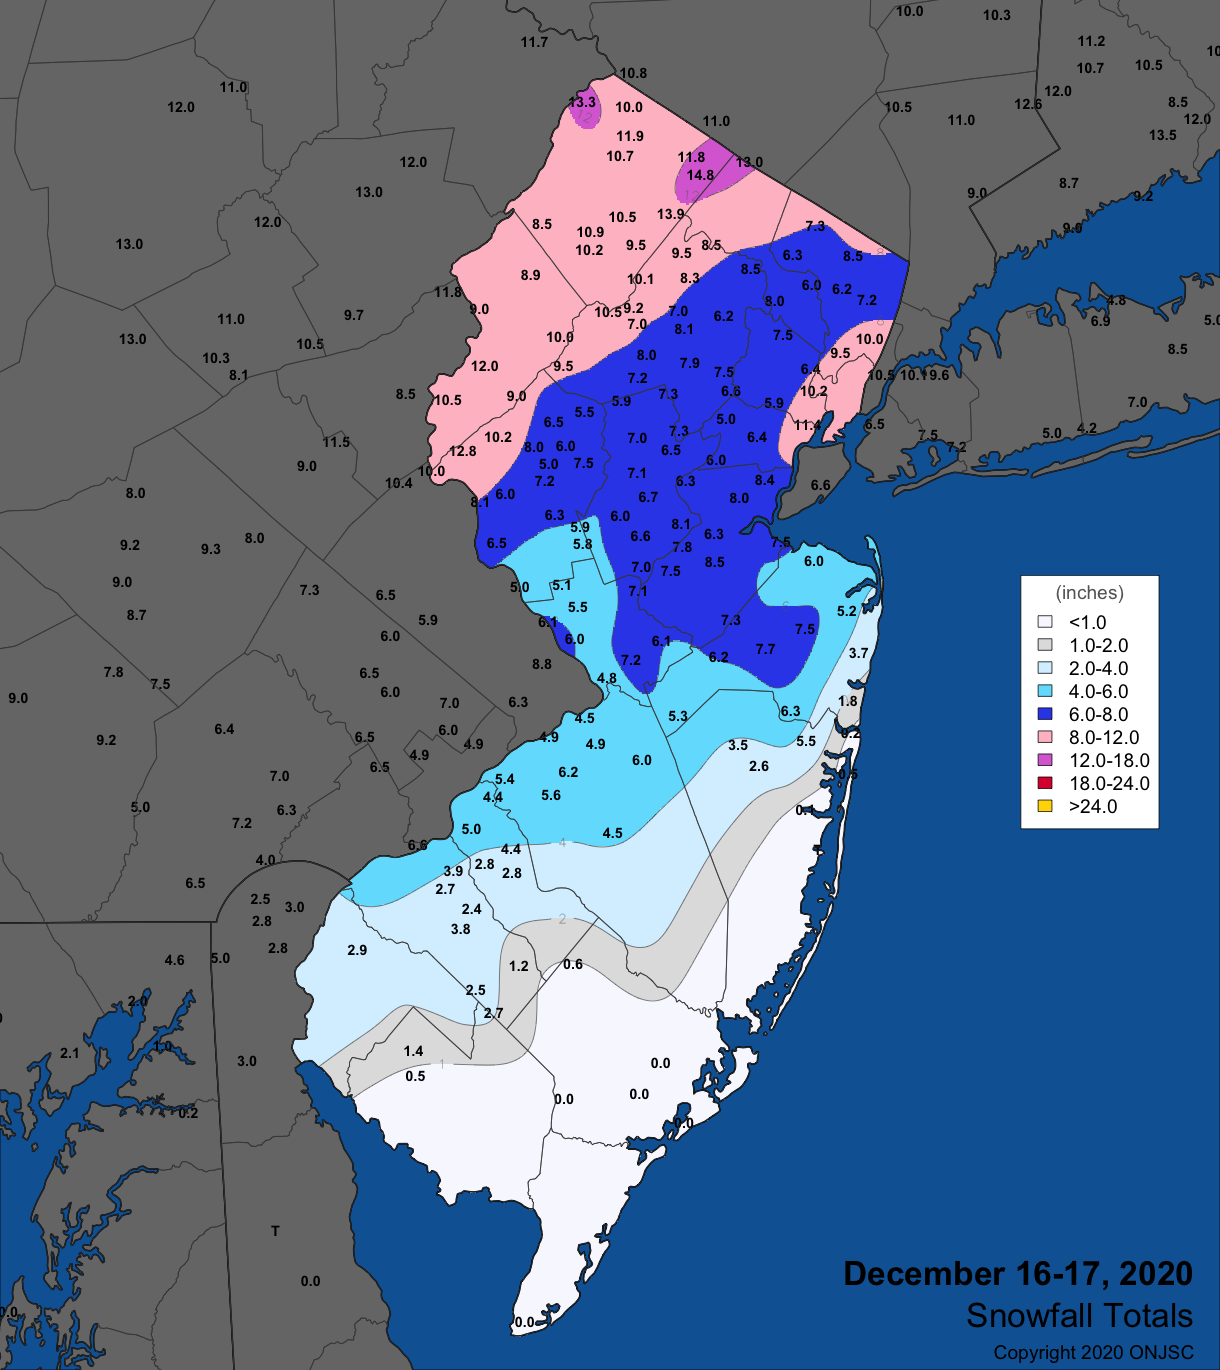 Snowfall map from December 16th-17th winter storm